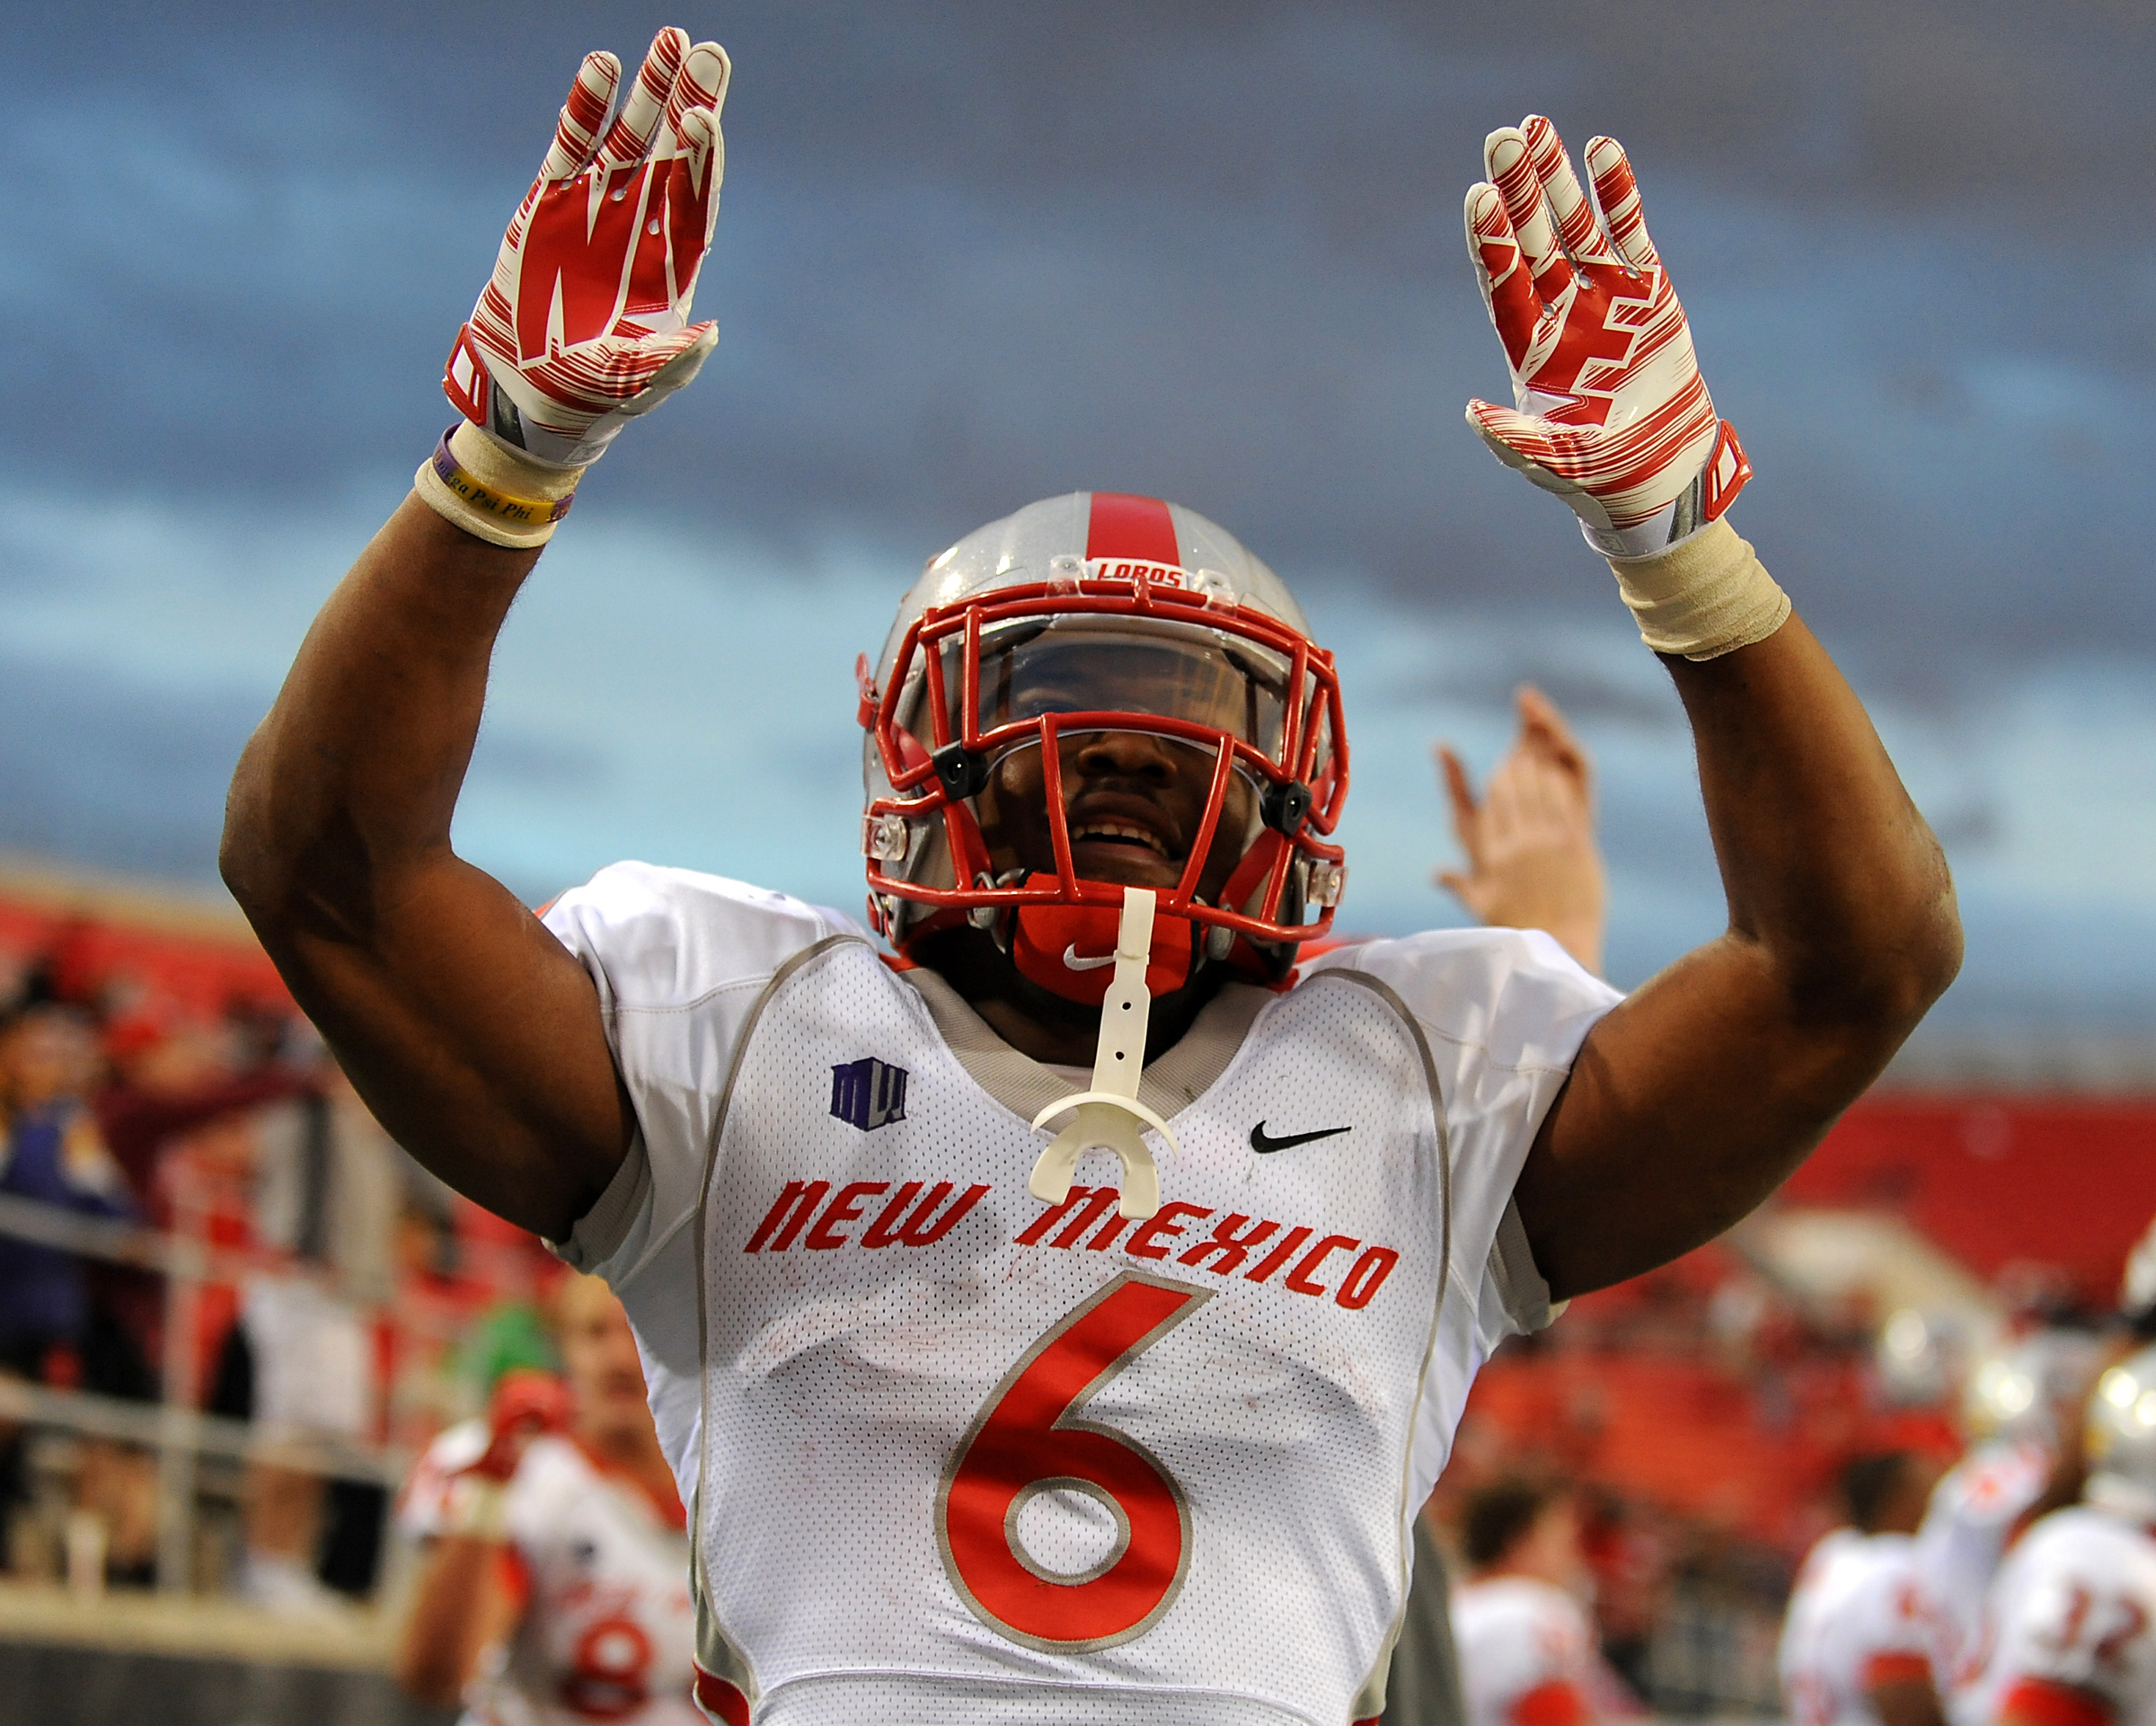 The Lobos play a bowl game for the first time since 2007. Can Jhurell Pressley and UNM benefit from home-field advantage?